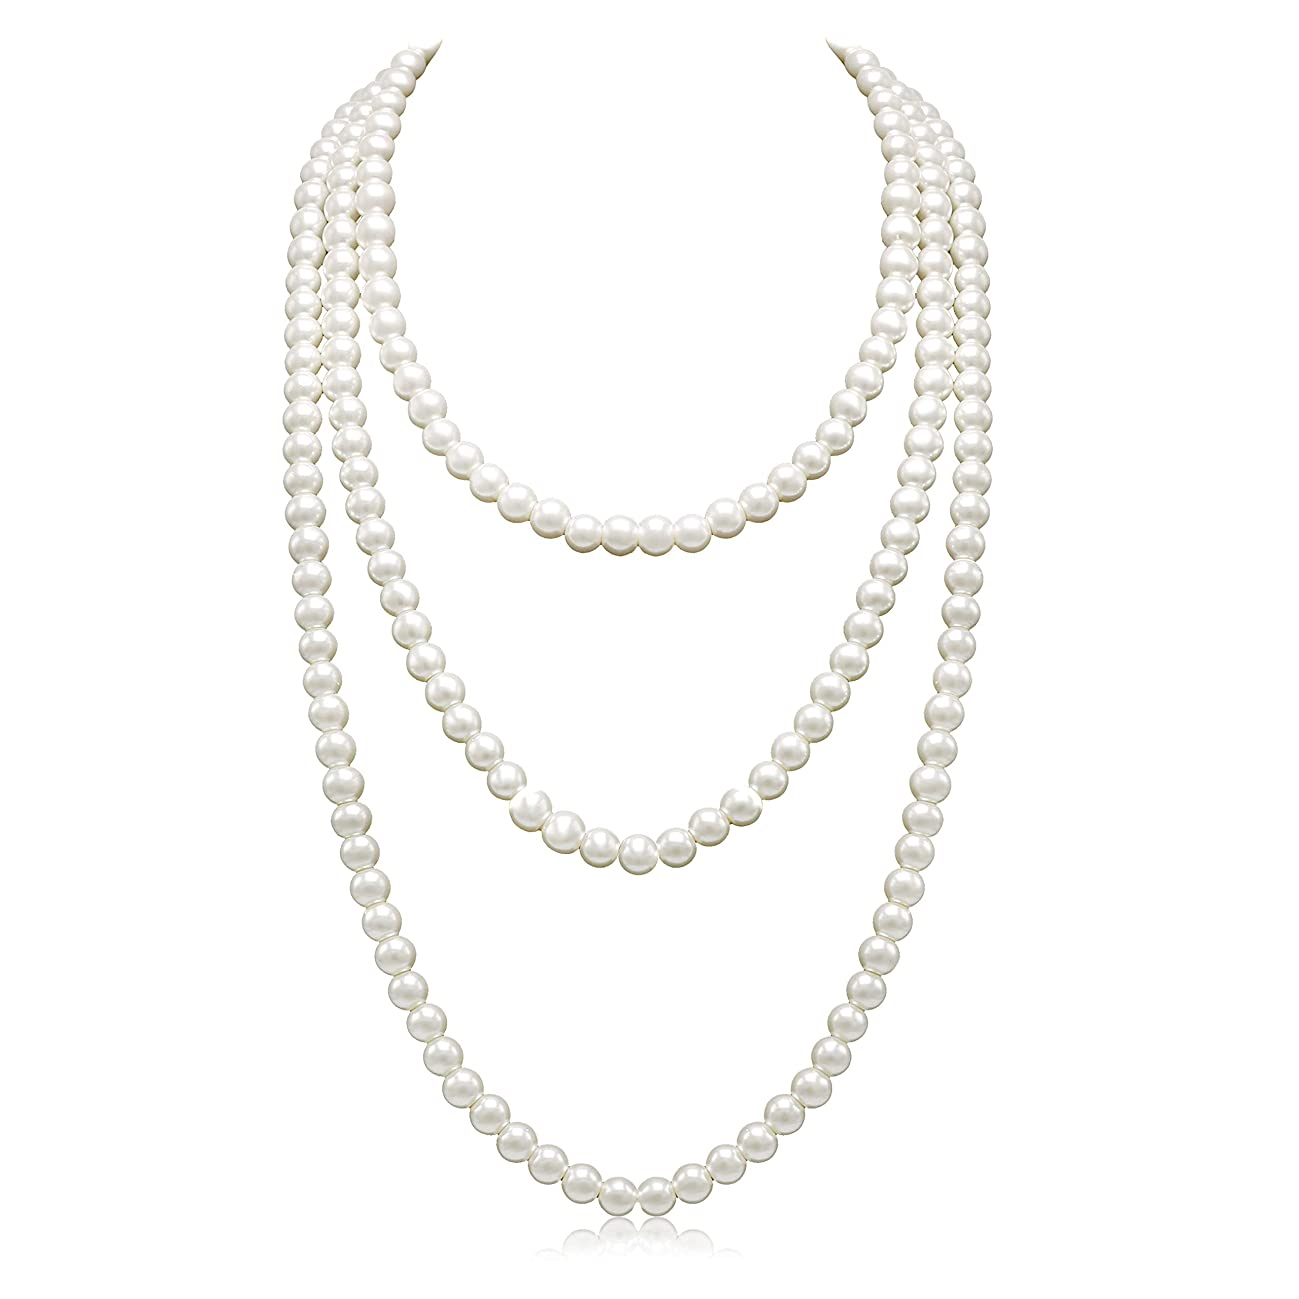 So Pretty Long Pearl Necklaces for Women Cream White Faux Pearl Strand Layered Necklace Costume Jewelry,69